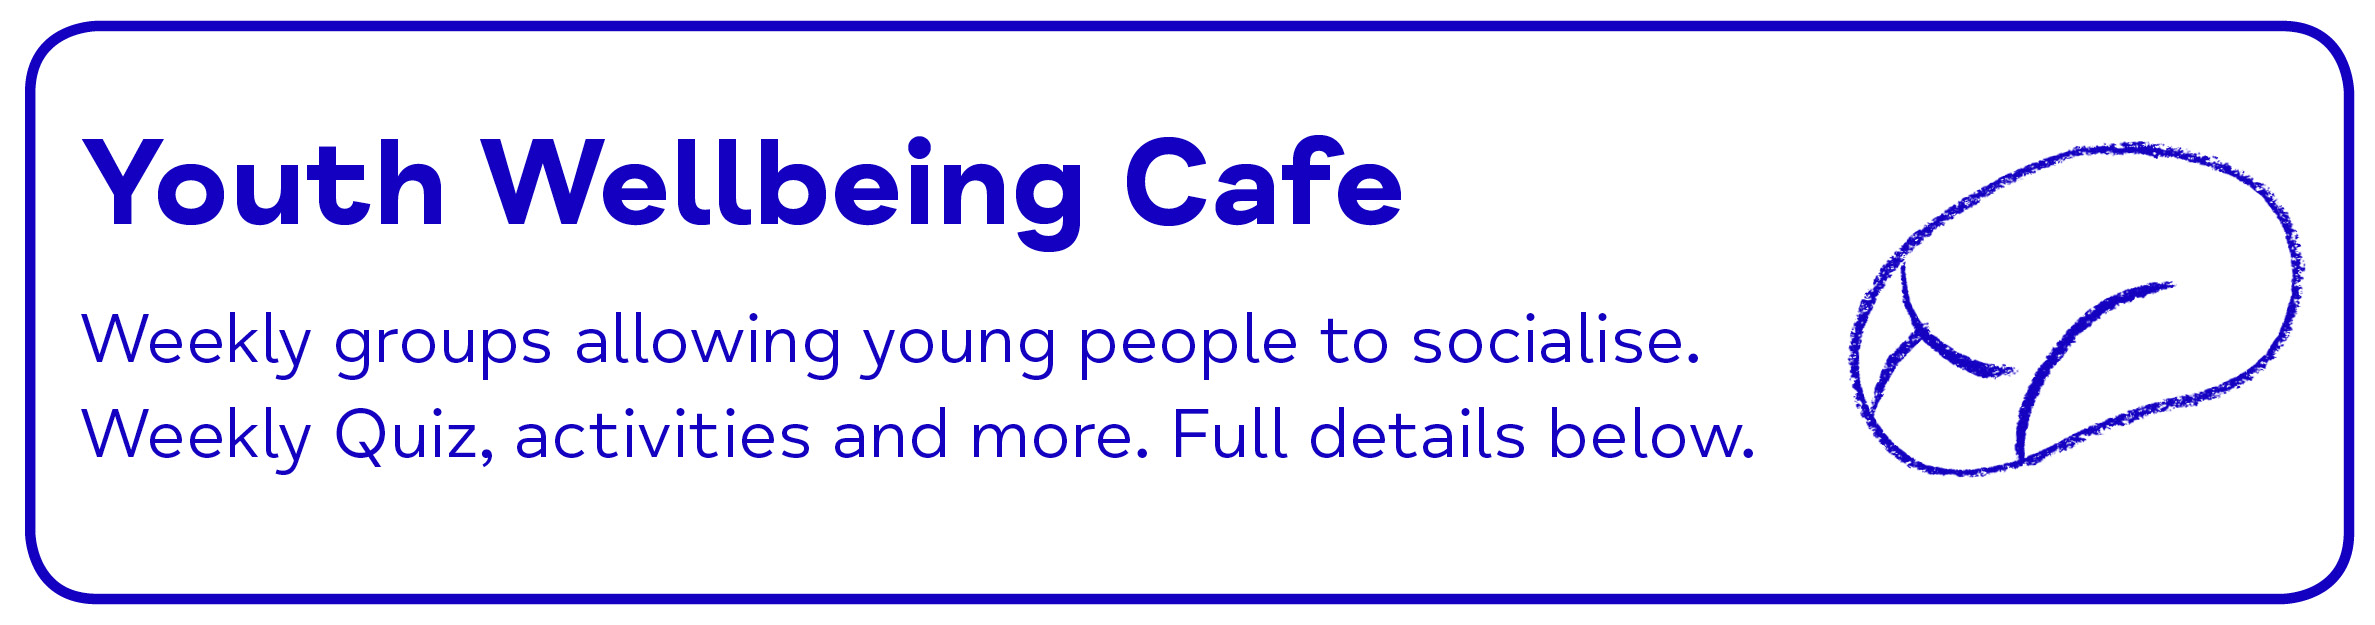 Youth Wellbeing Cafe Weekly groups allowing young people to socialise. Weekly Quiz, activities and more. Full details below.